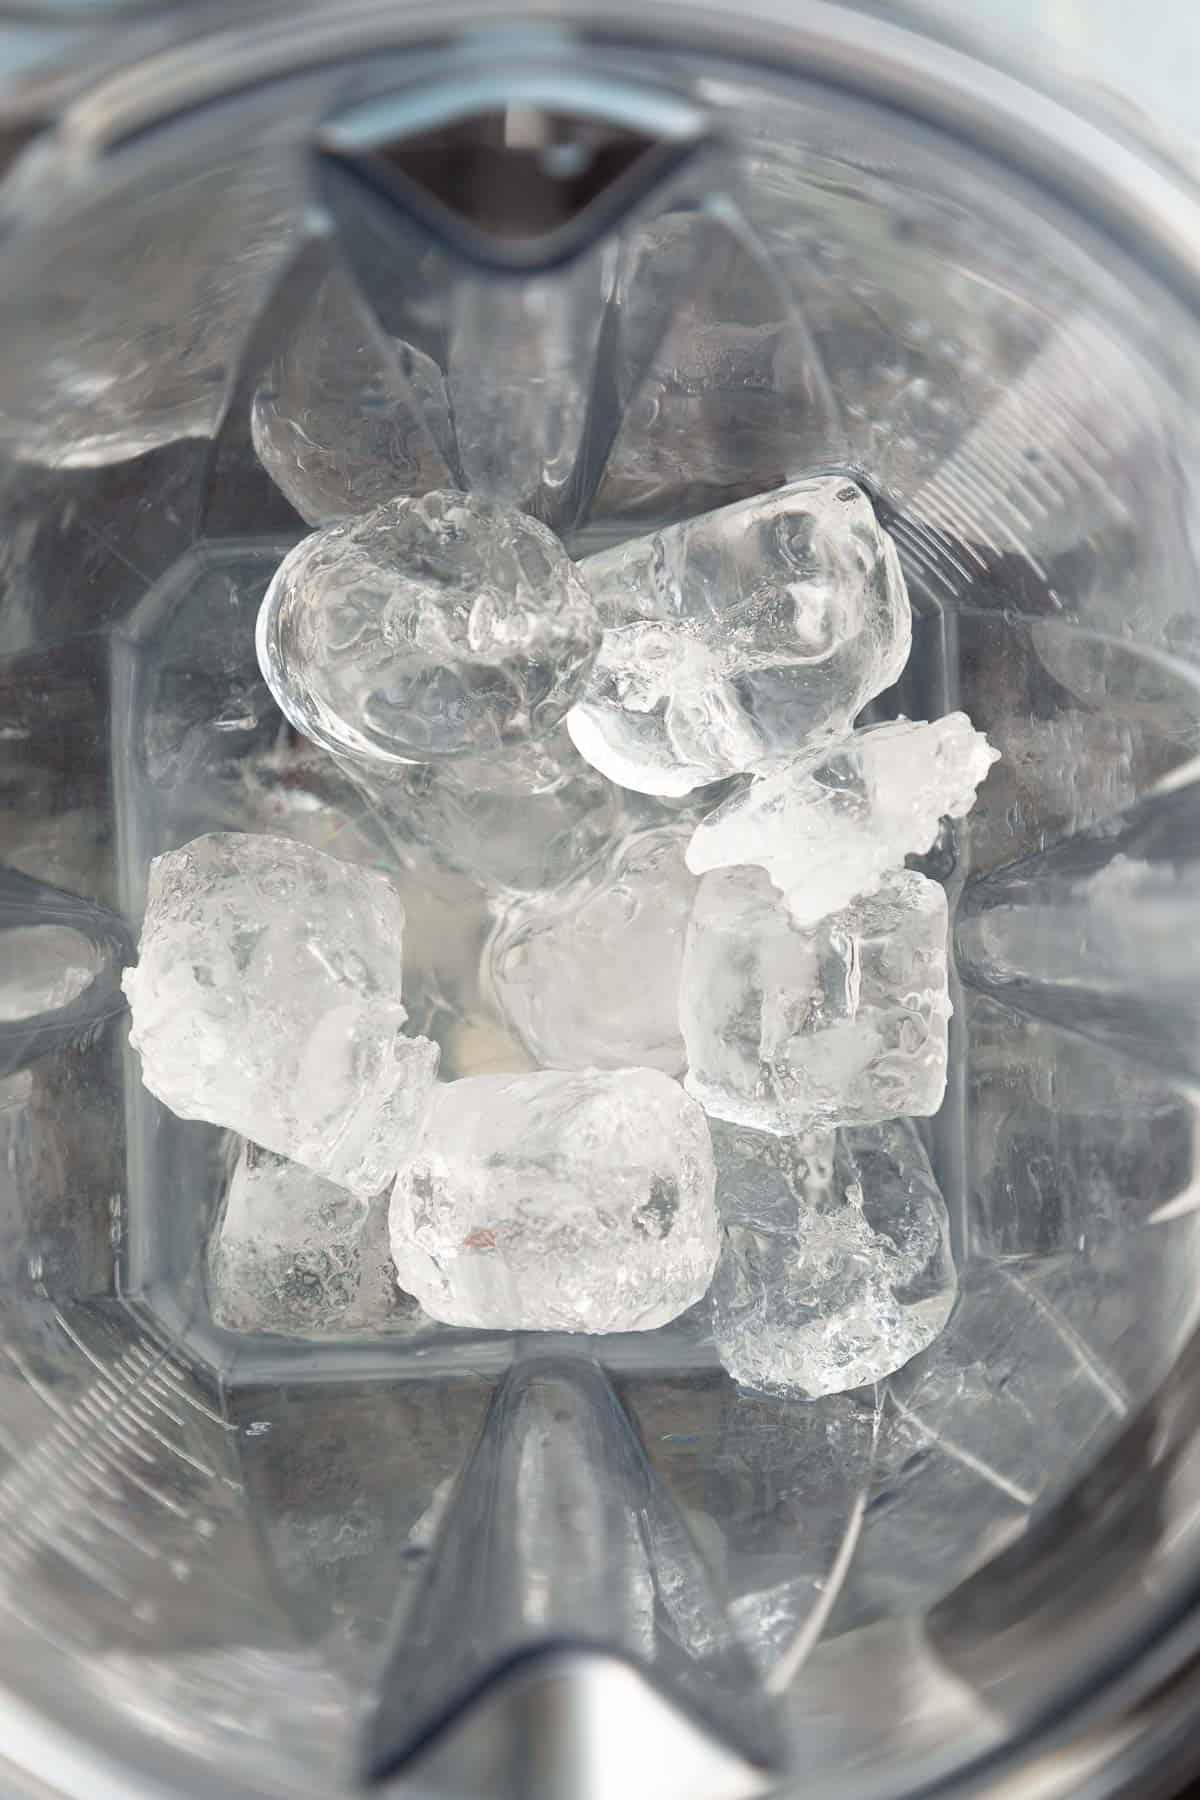 ice in a blender bowl